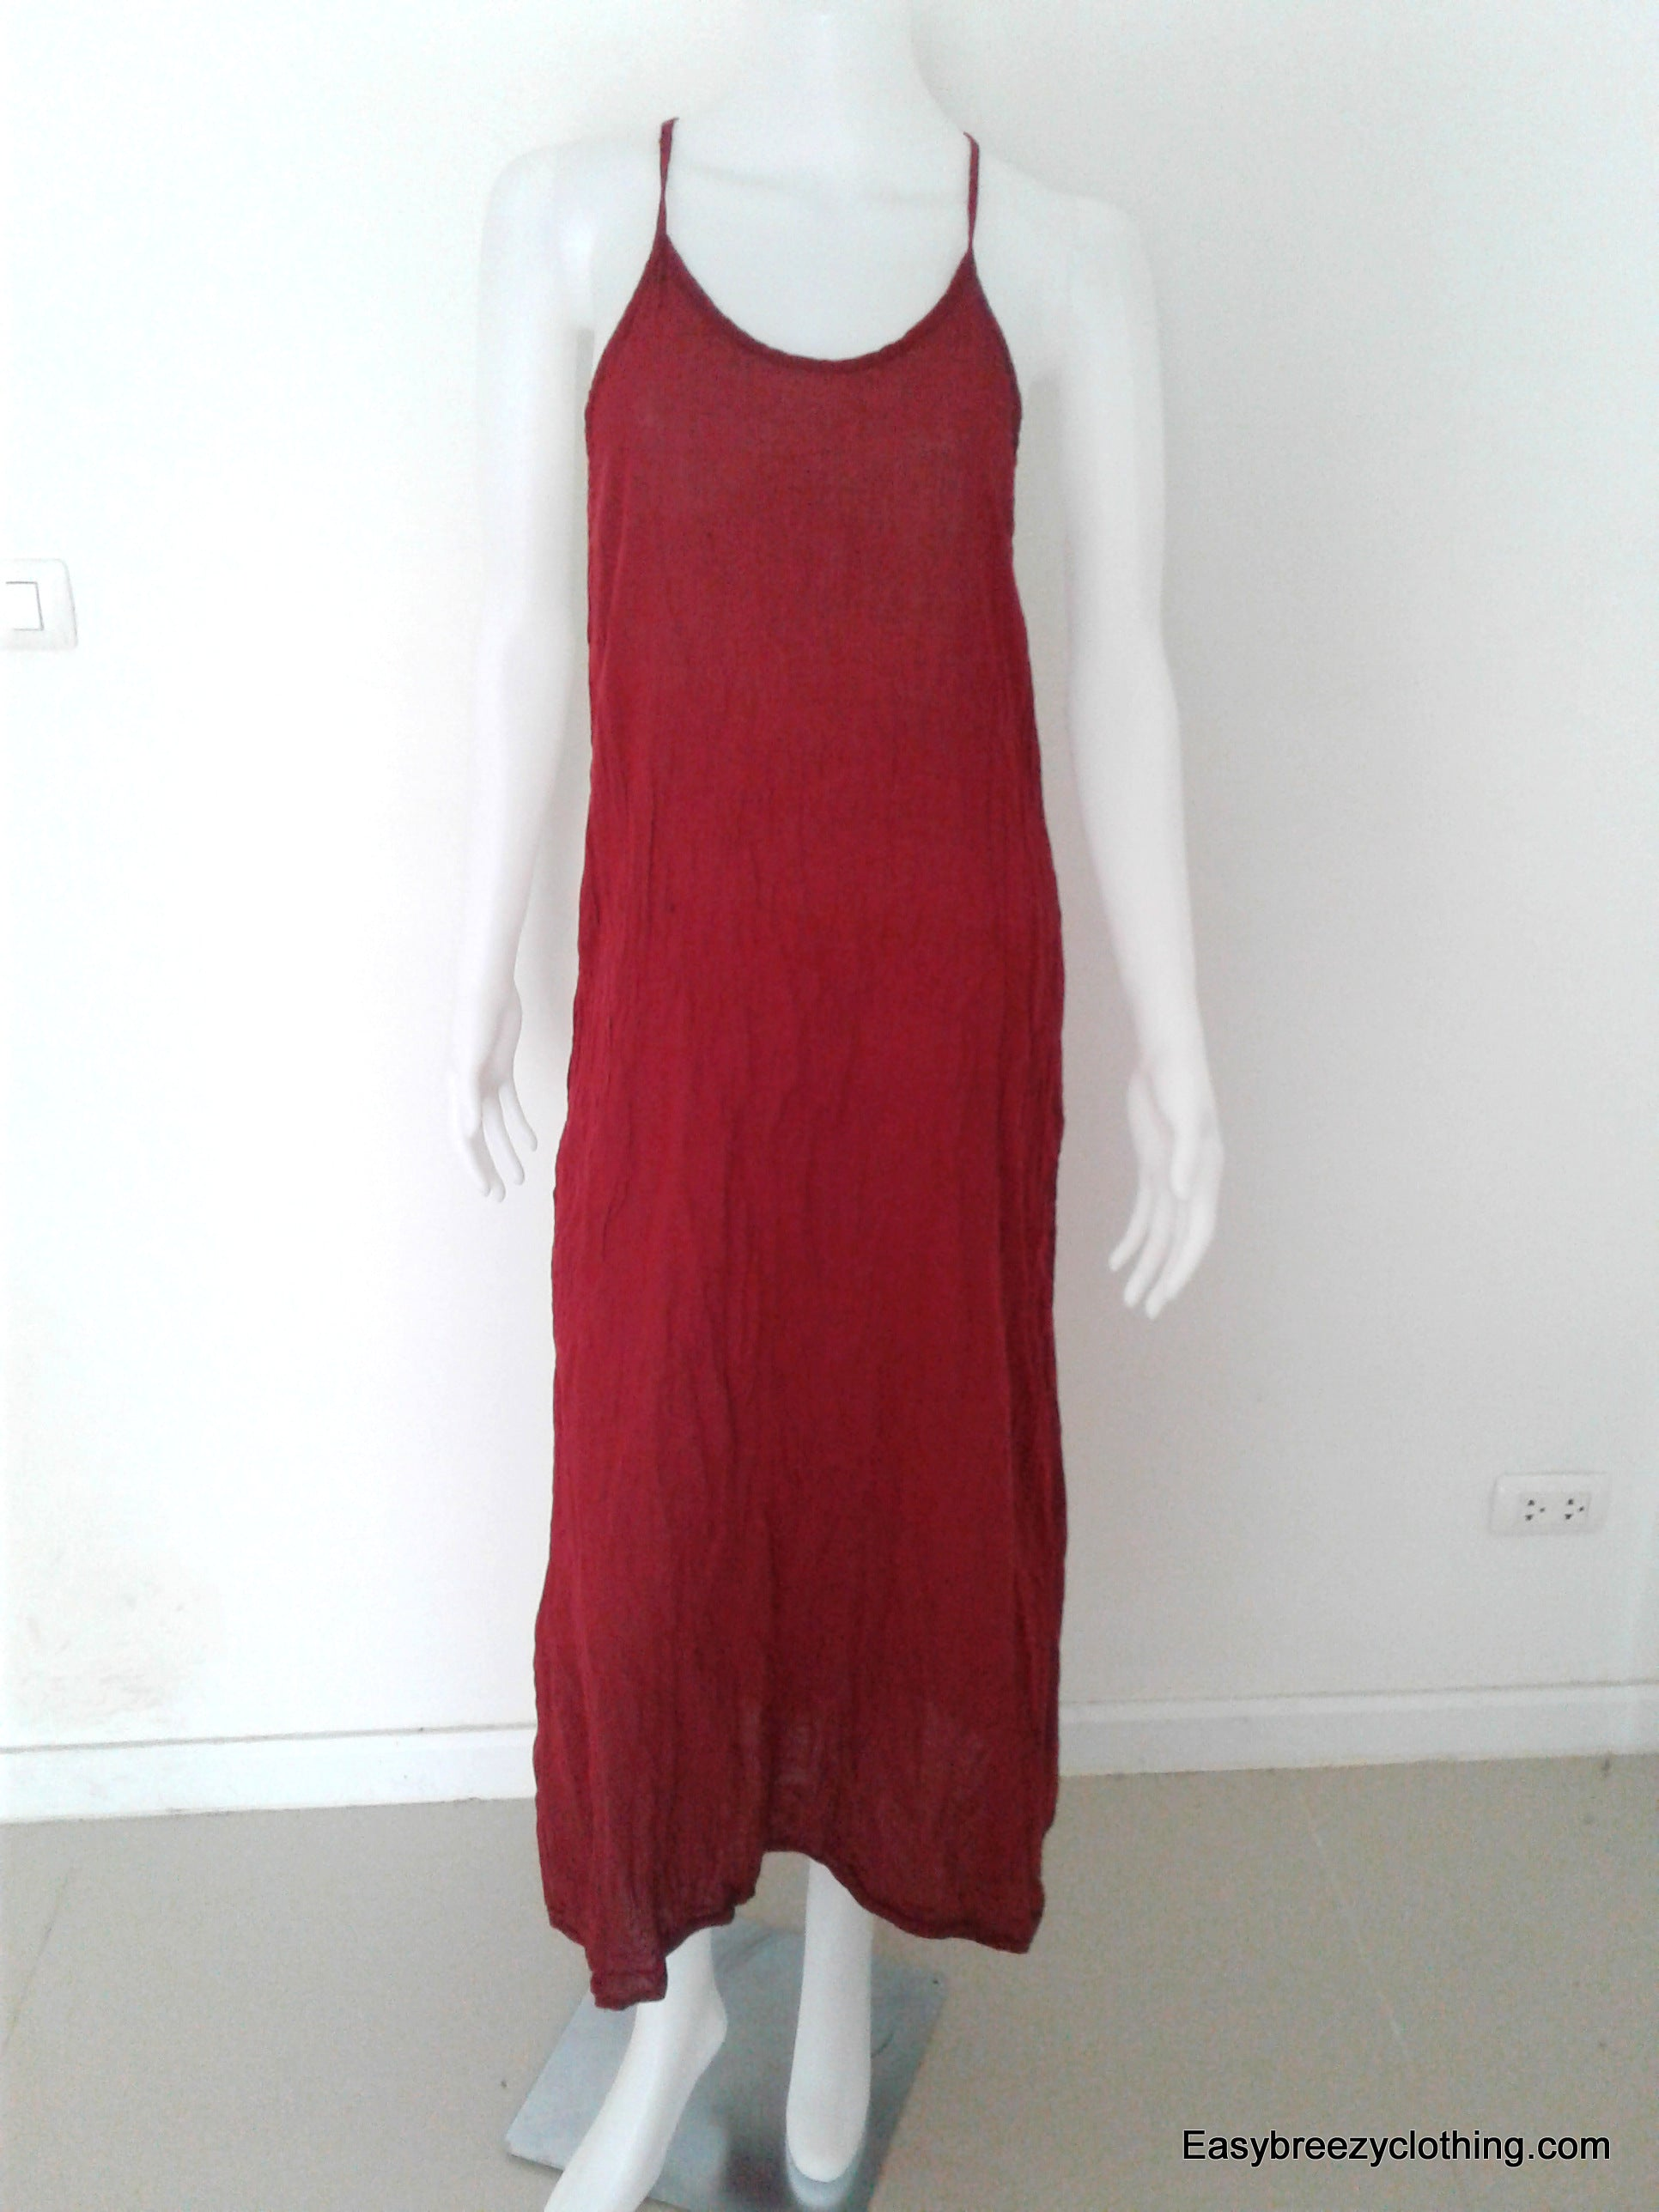 Maxi Summer Dress,Cotton Dresses,[Easy Breezy Clothing]